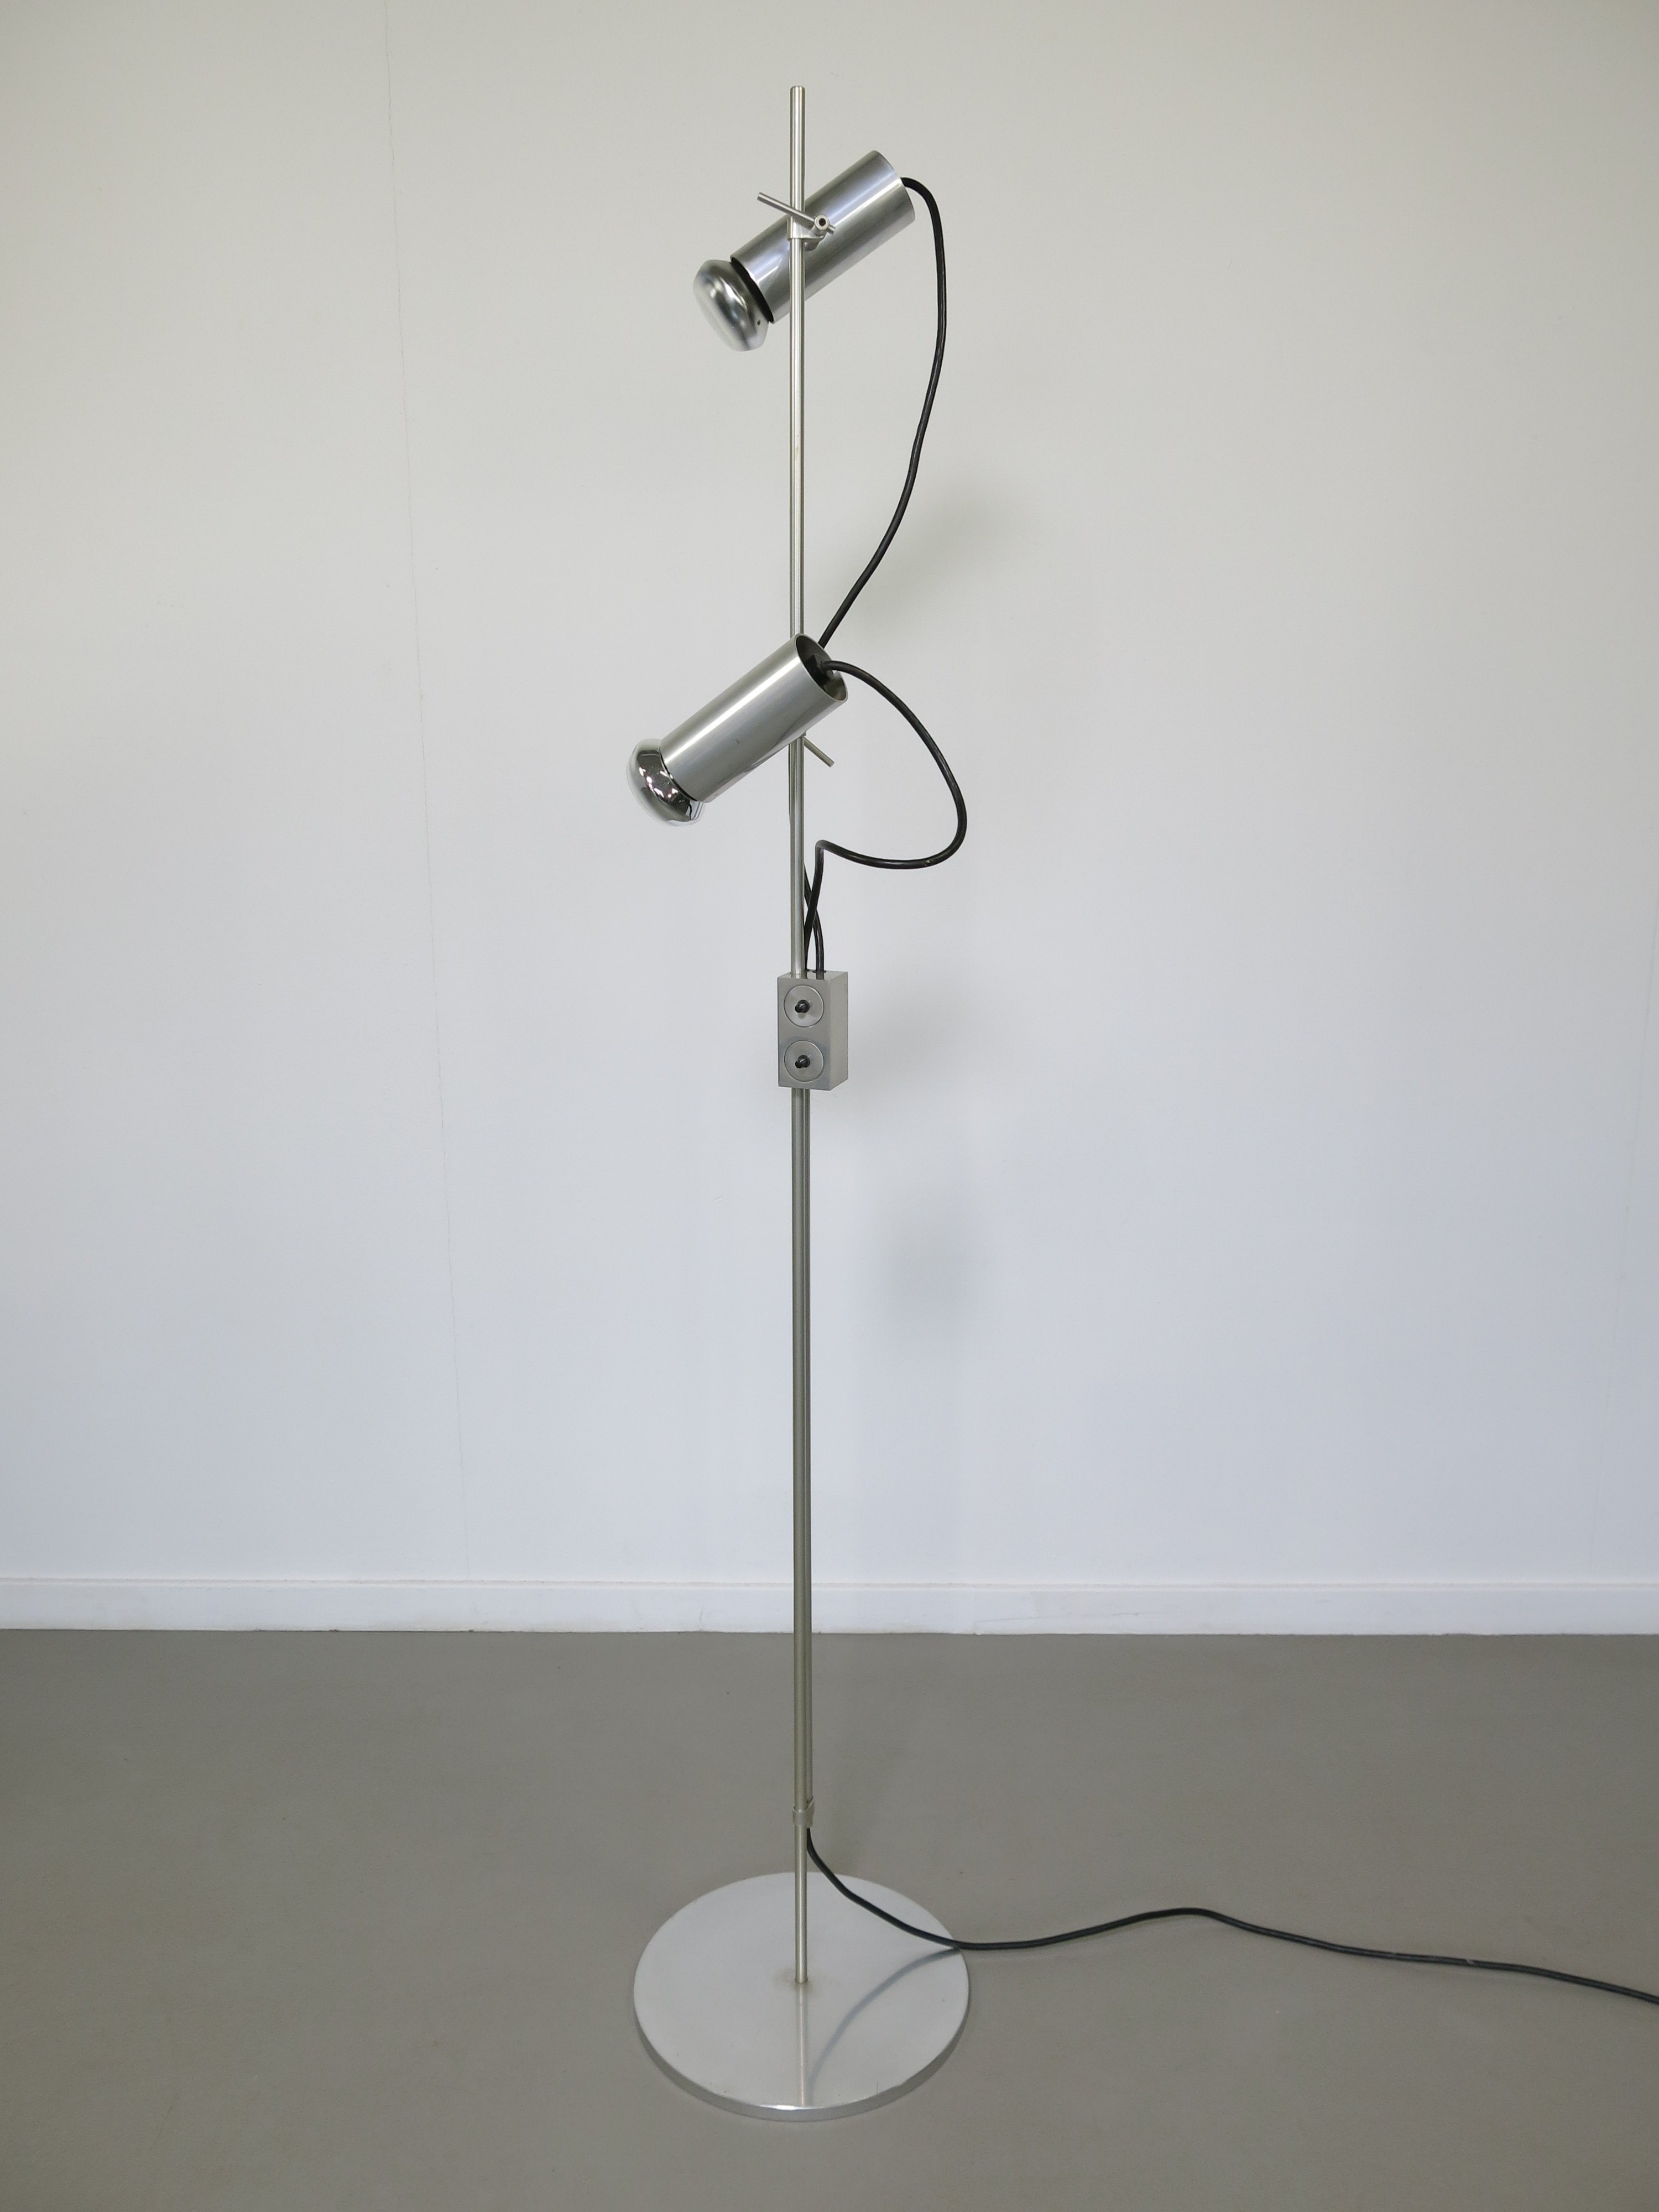 Floor lamp by peter nelson for architectural lighting ltd 1960s floor lamp by peter nelson for architectural lighting ltd 1960s aloadofball Image collections